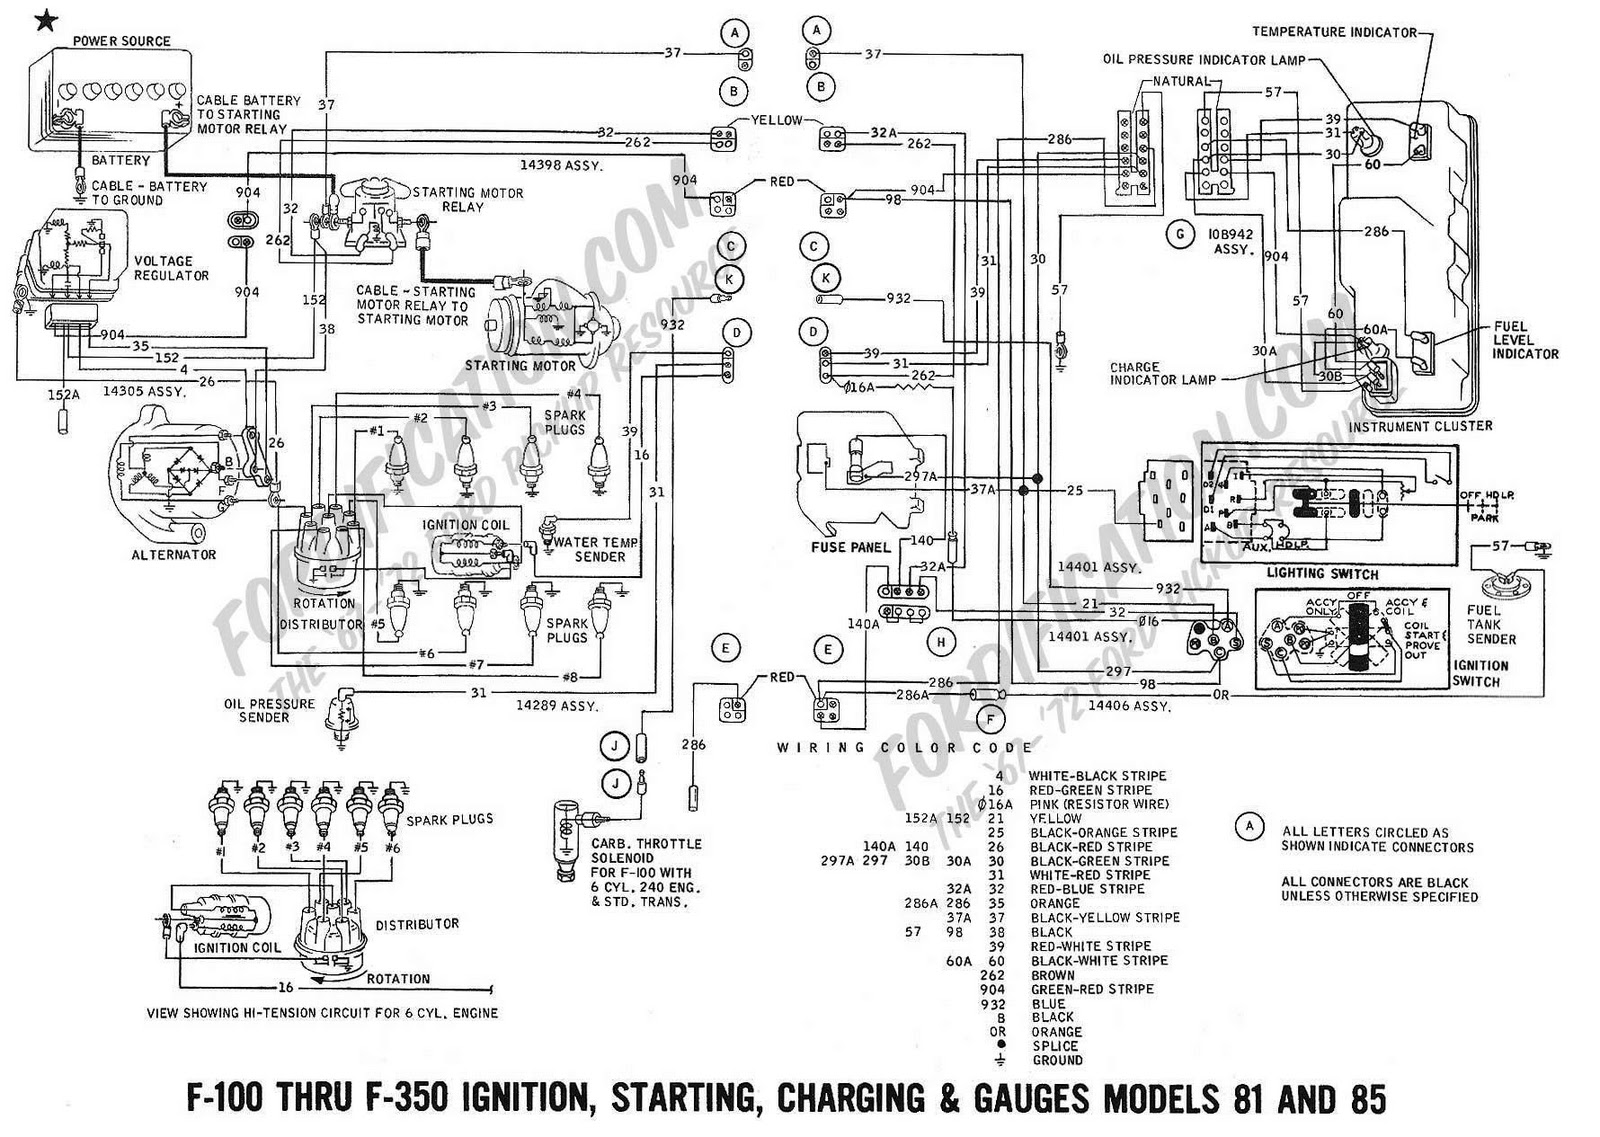 Wiring Diagram For 1969 Ford F 100 Pick Up Schema Diagrams Mercruiser F100 Of 1981 Data Buick Skylark